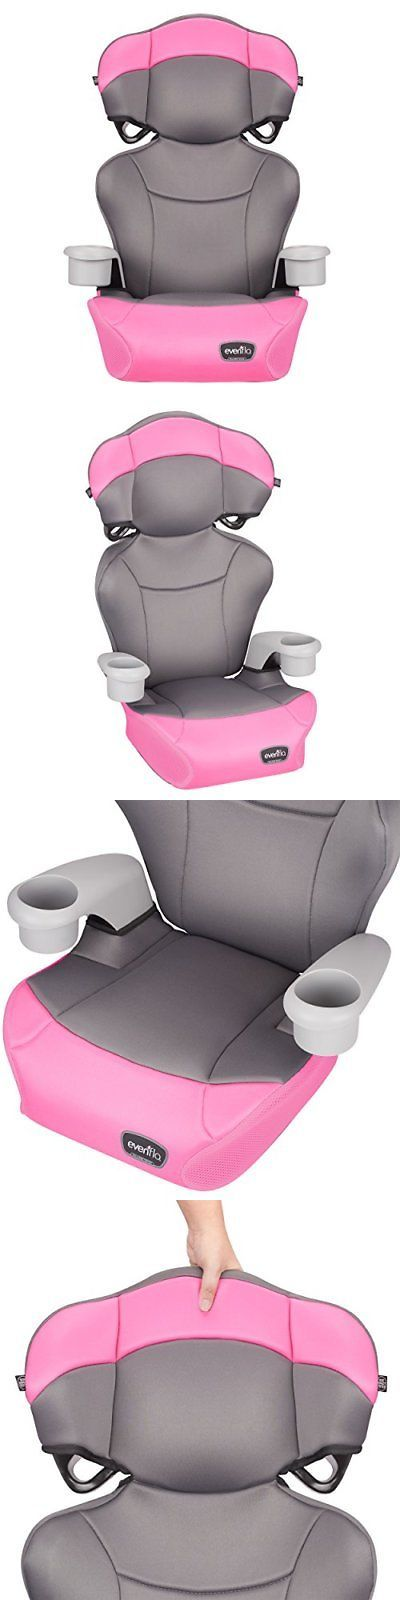 Car Safety Seats 66692 Evenflo Big Kid Amp High Back Booster Seat Pink Dove BUY IT NOW ONLY 5302 On EBay